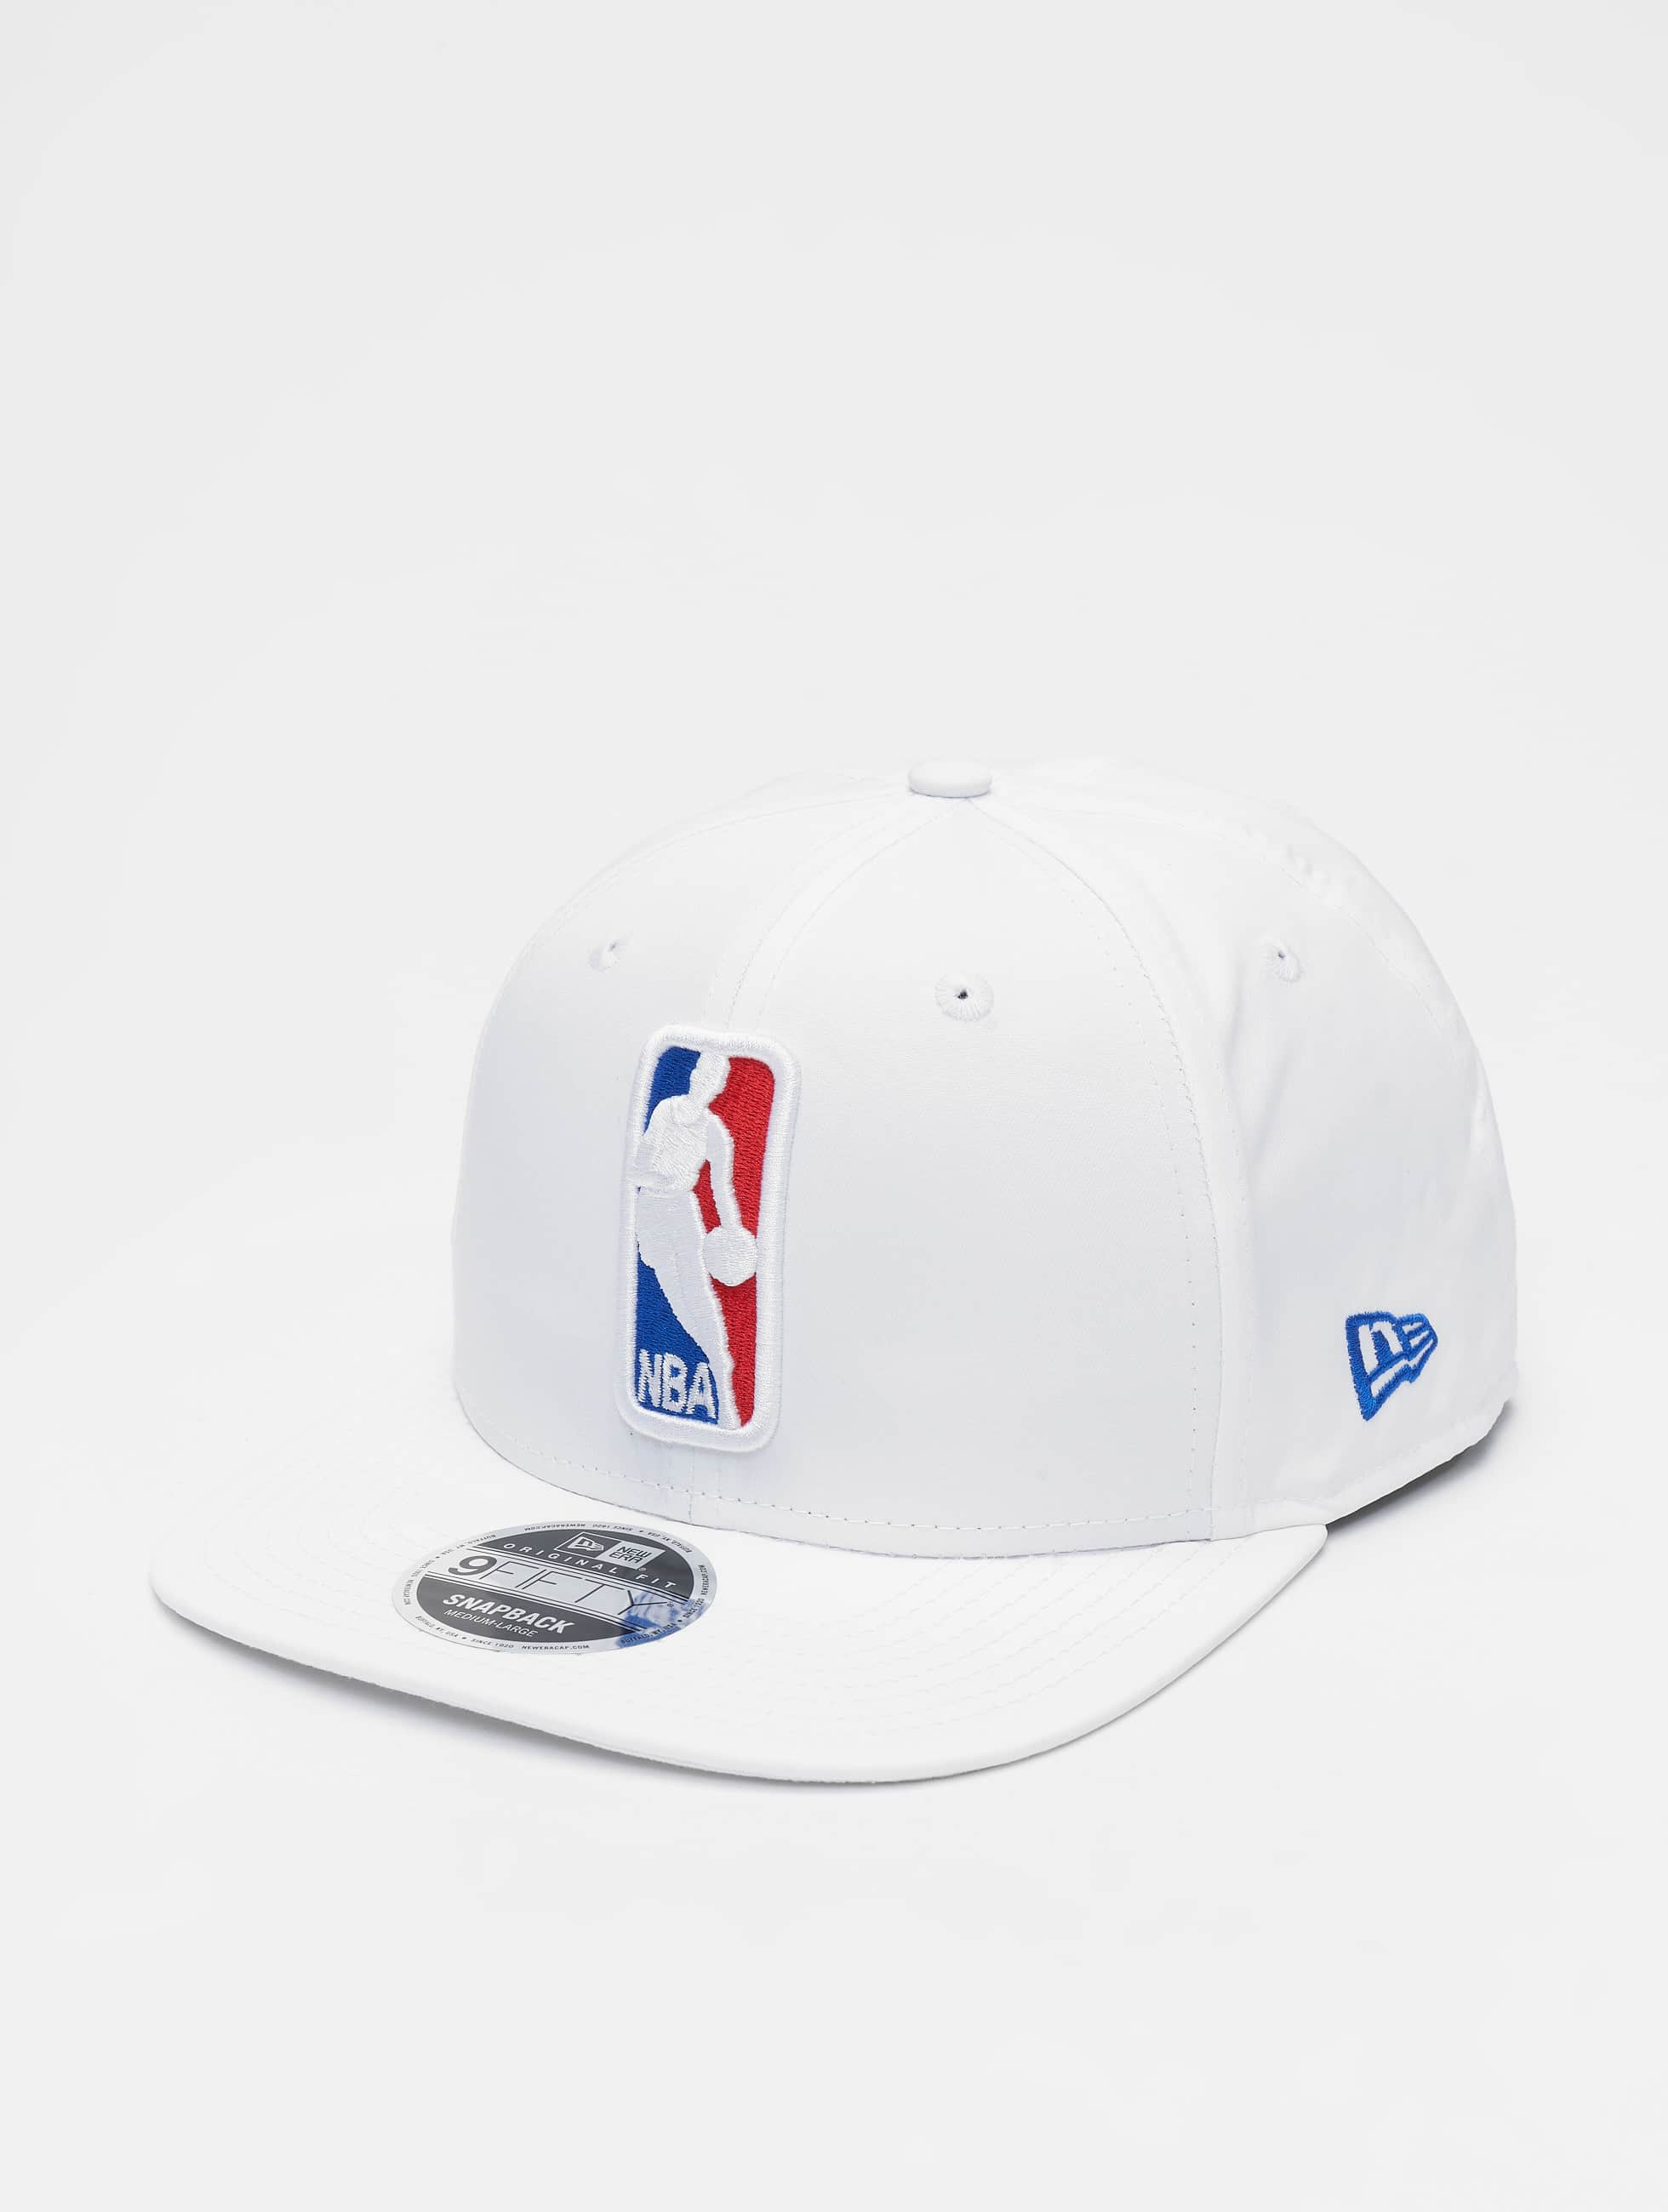 New Era | NBA Featherweight Logoman 9fifty Original Fit  blanc Homme,Femme Casquette Snapback & Strapback